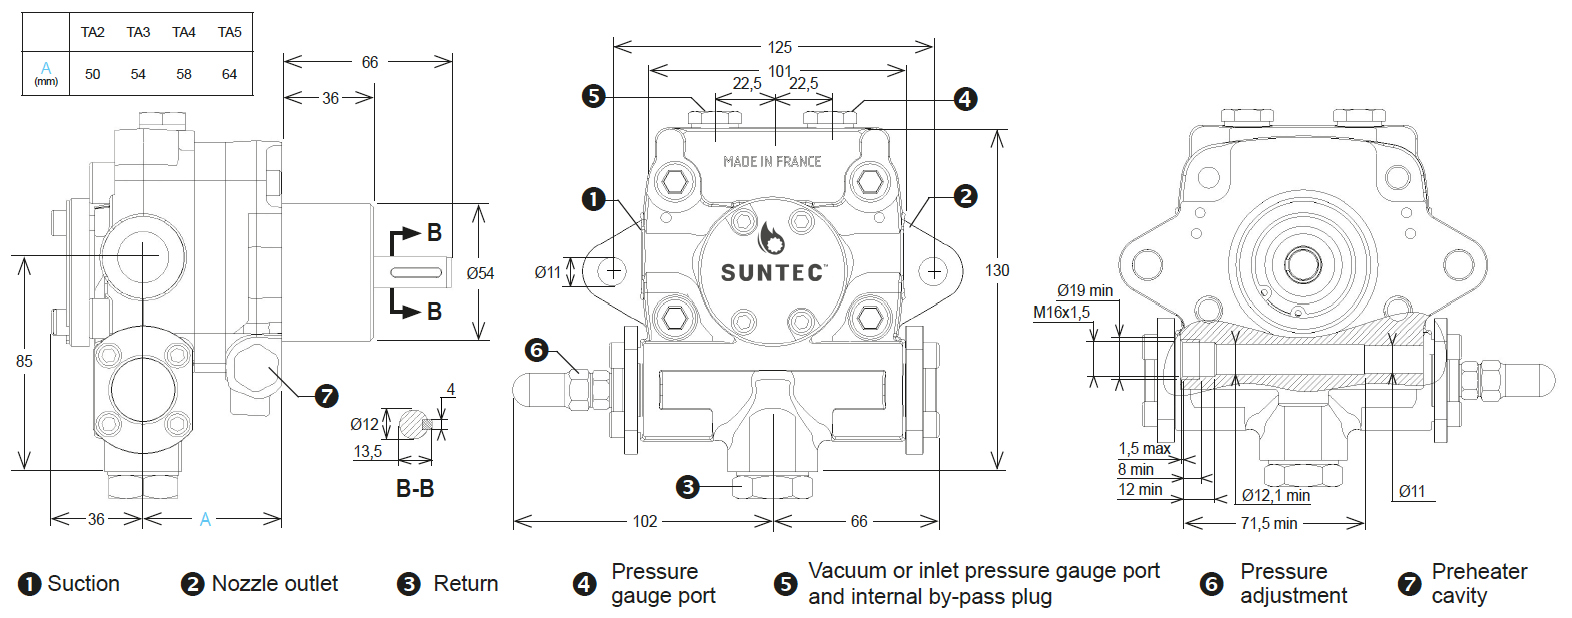 SUNTEC TA Series Pump Dimensions